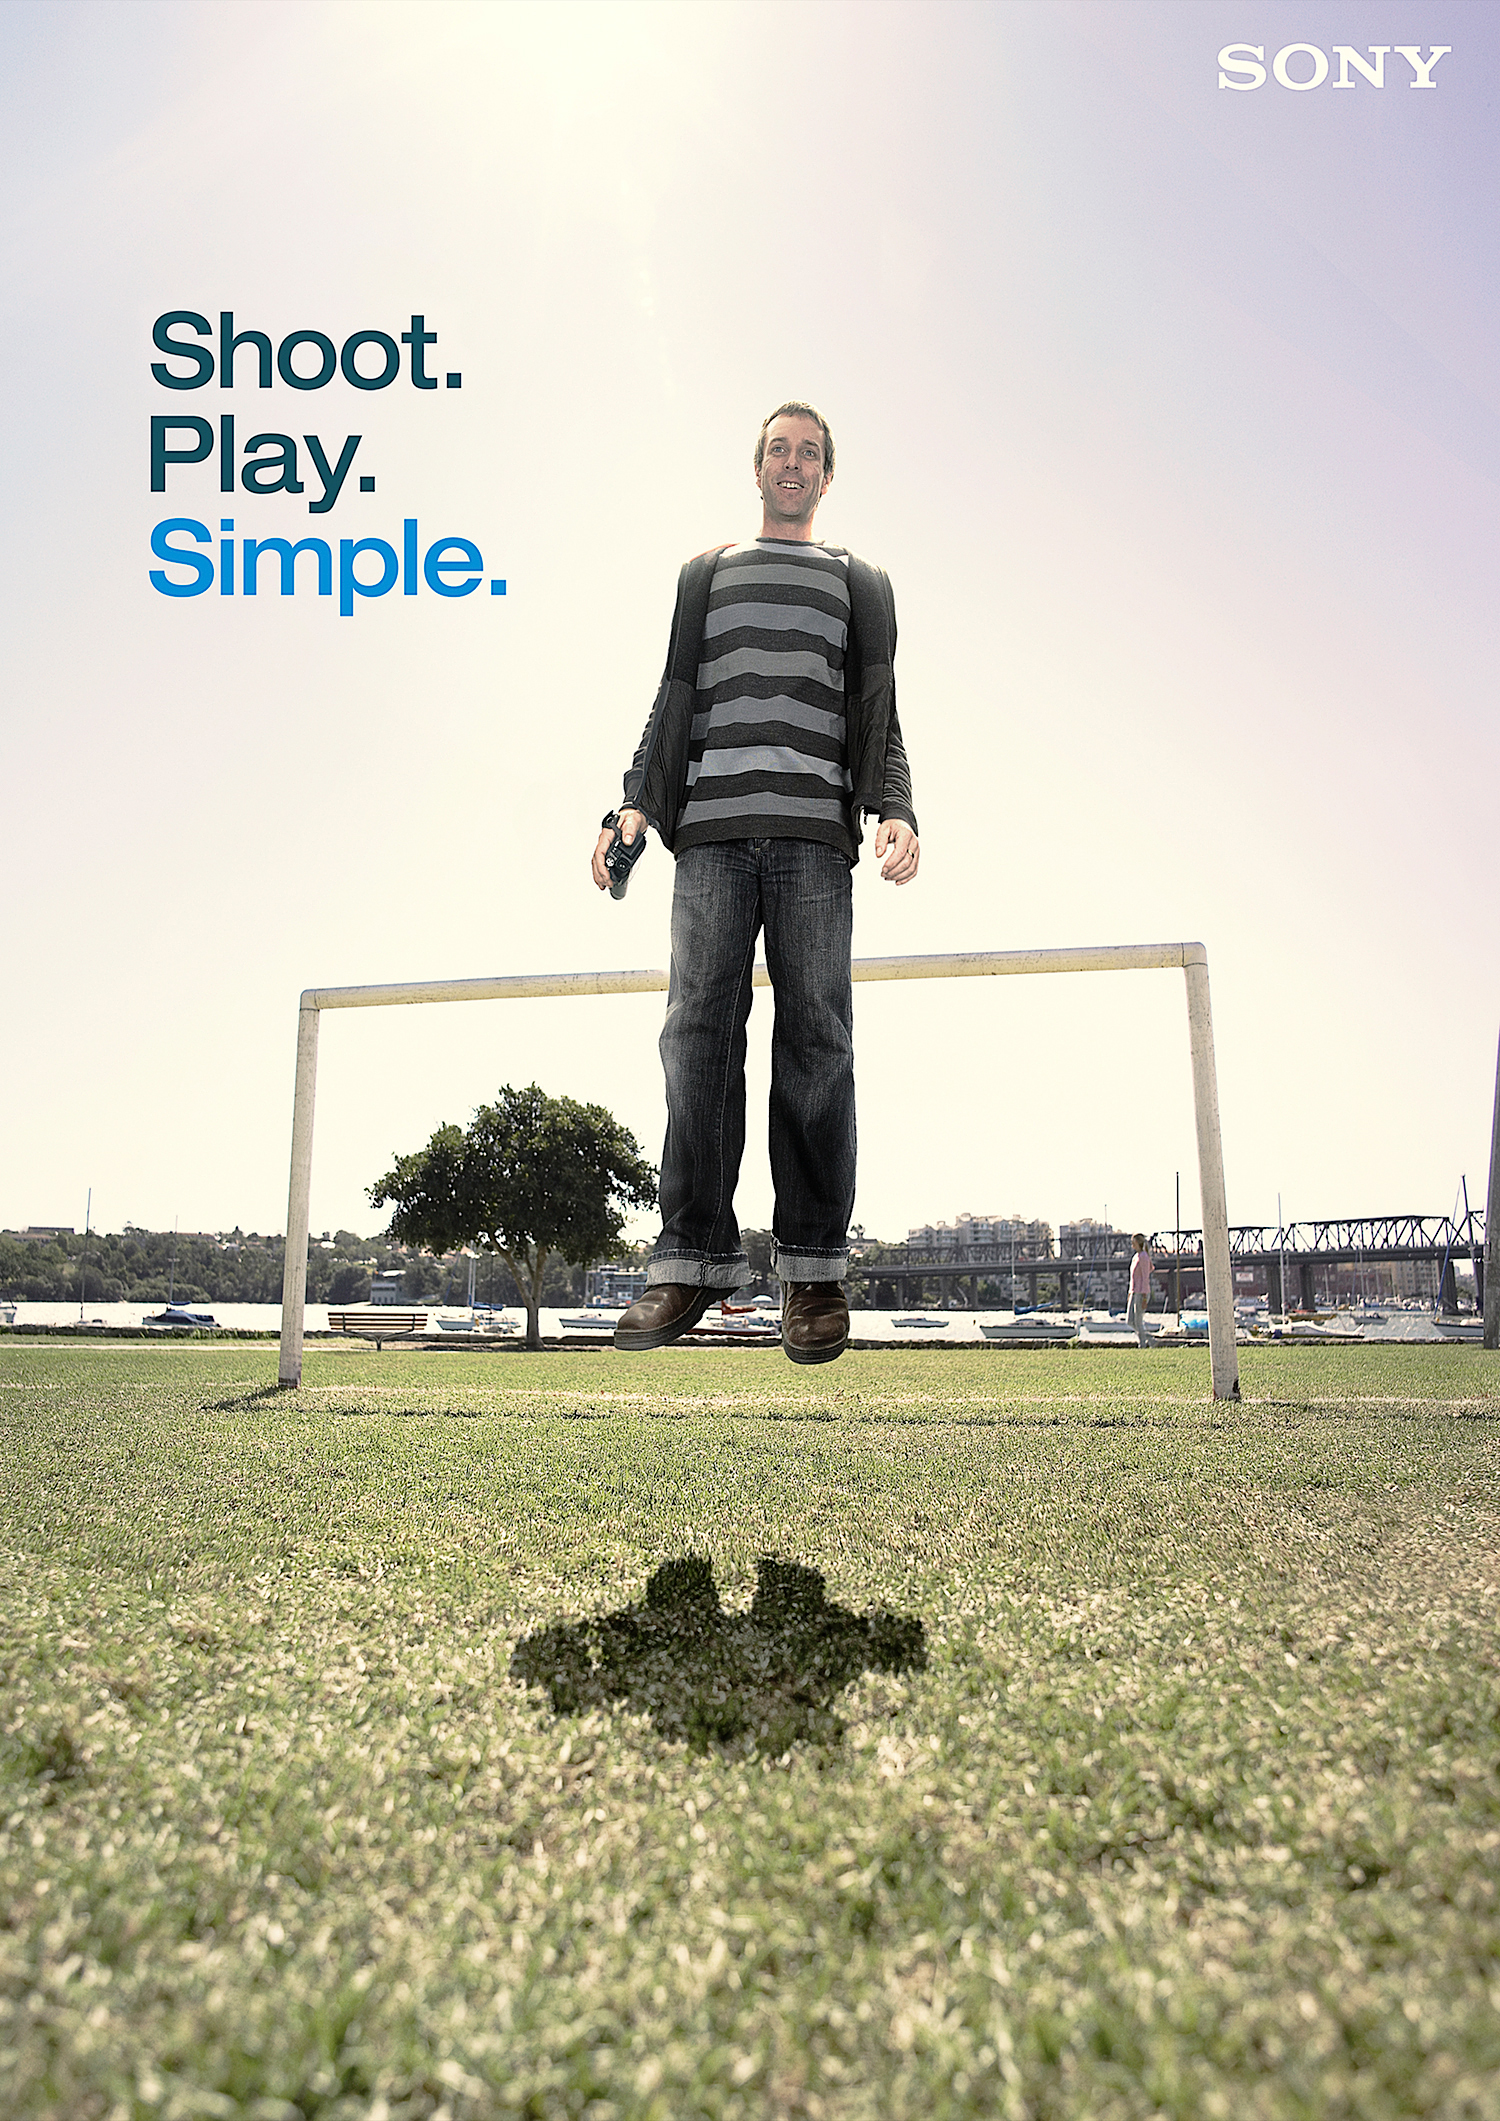 SONY-SHOOT-PLAY-SIMPLE.jpg